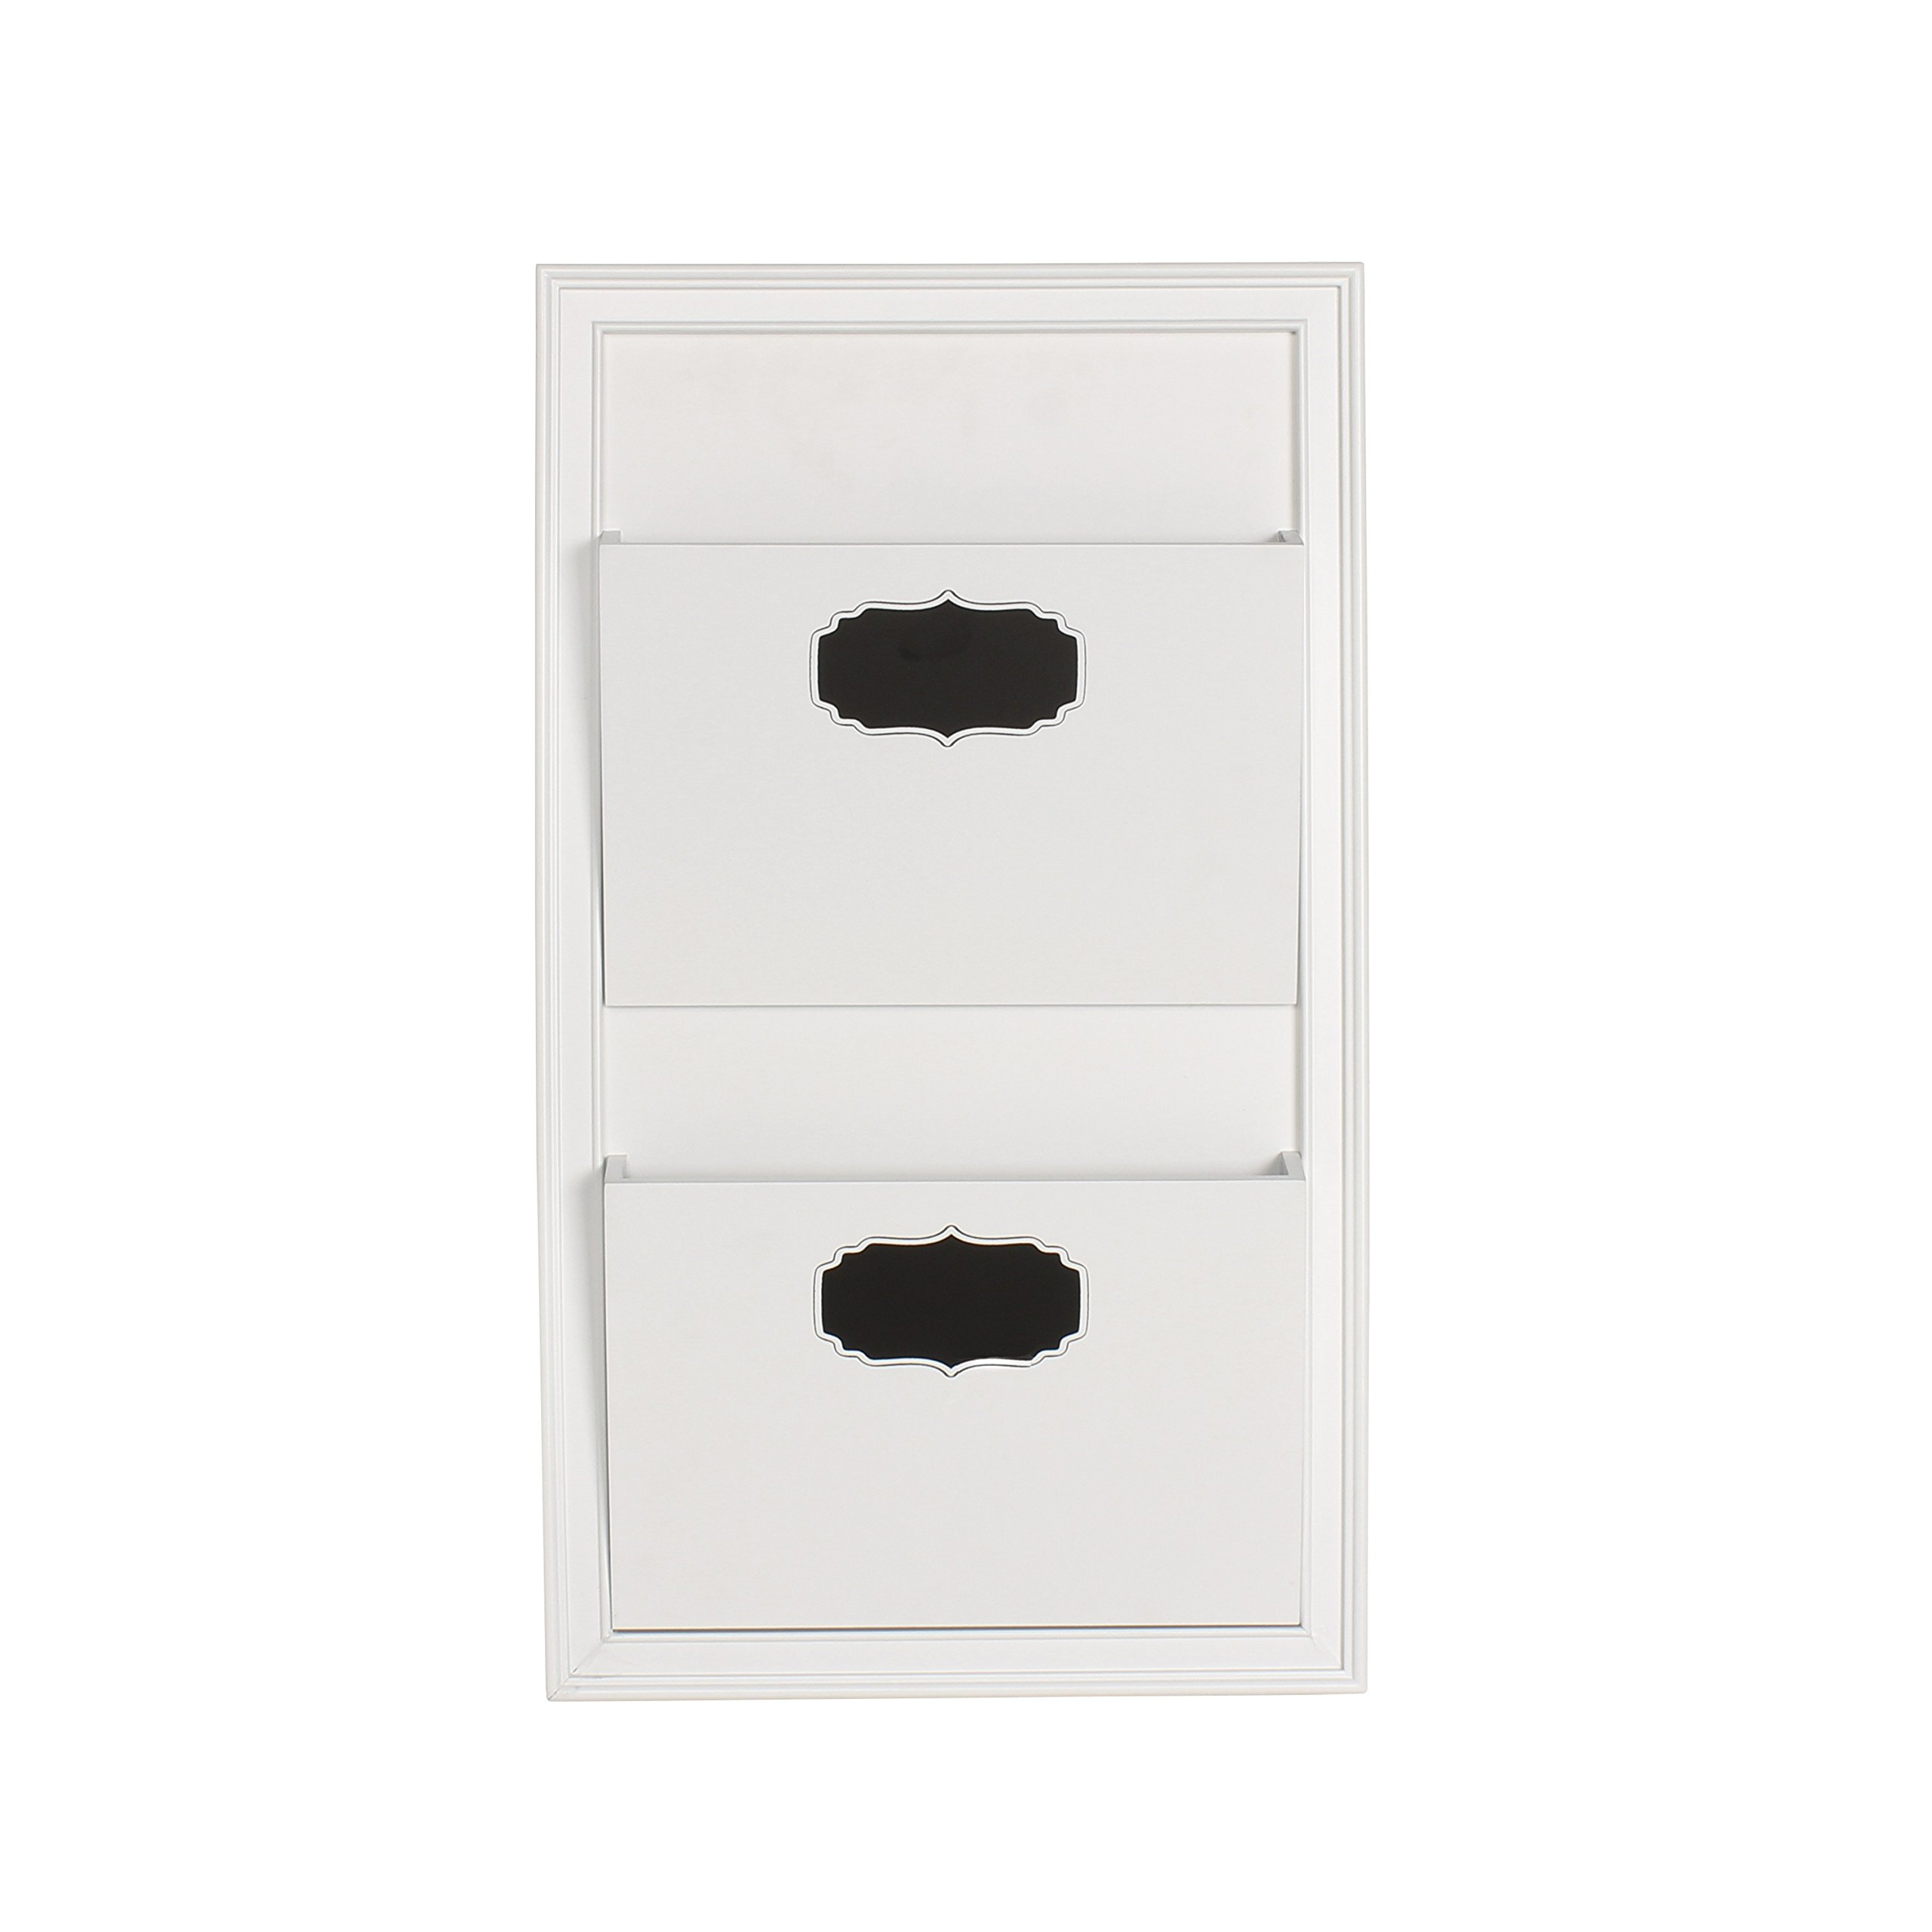 DesignOvation Walcott Decorative Wall Organizer Mail Holder with Two Pockets, White